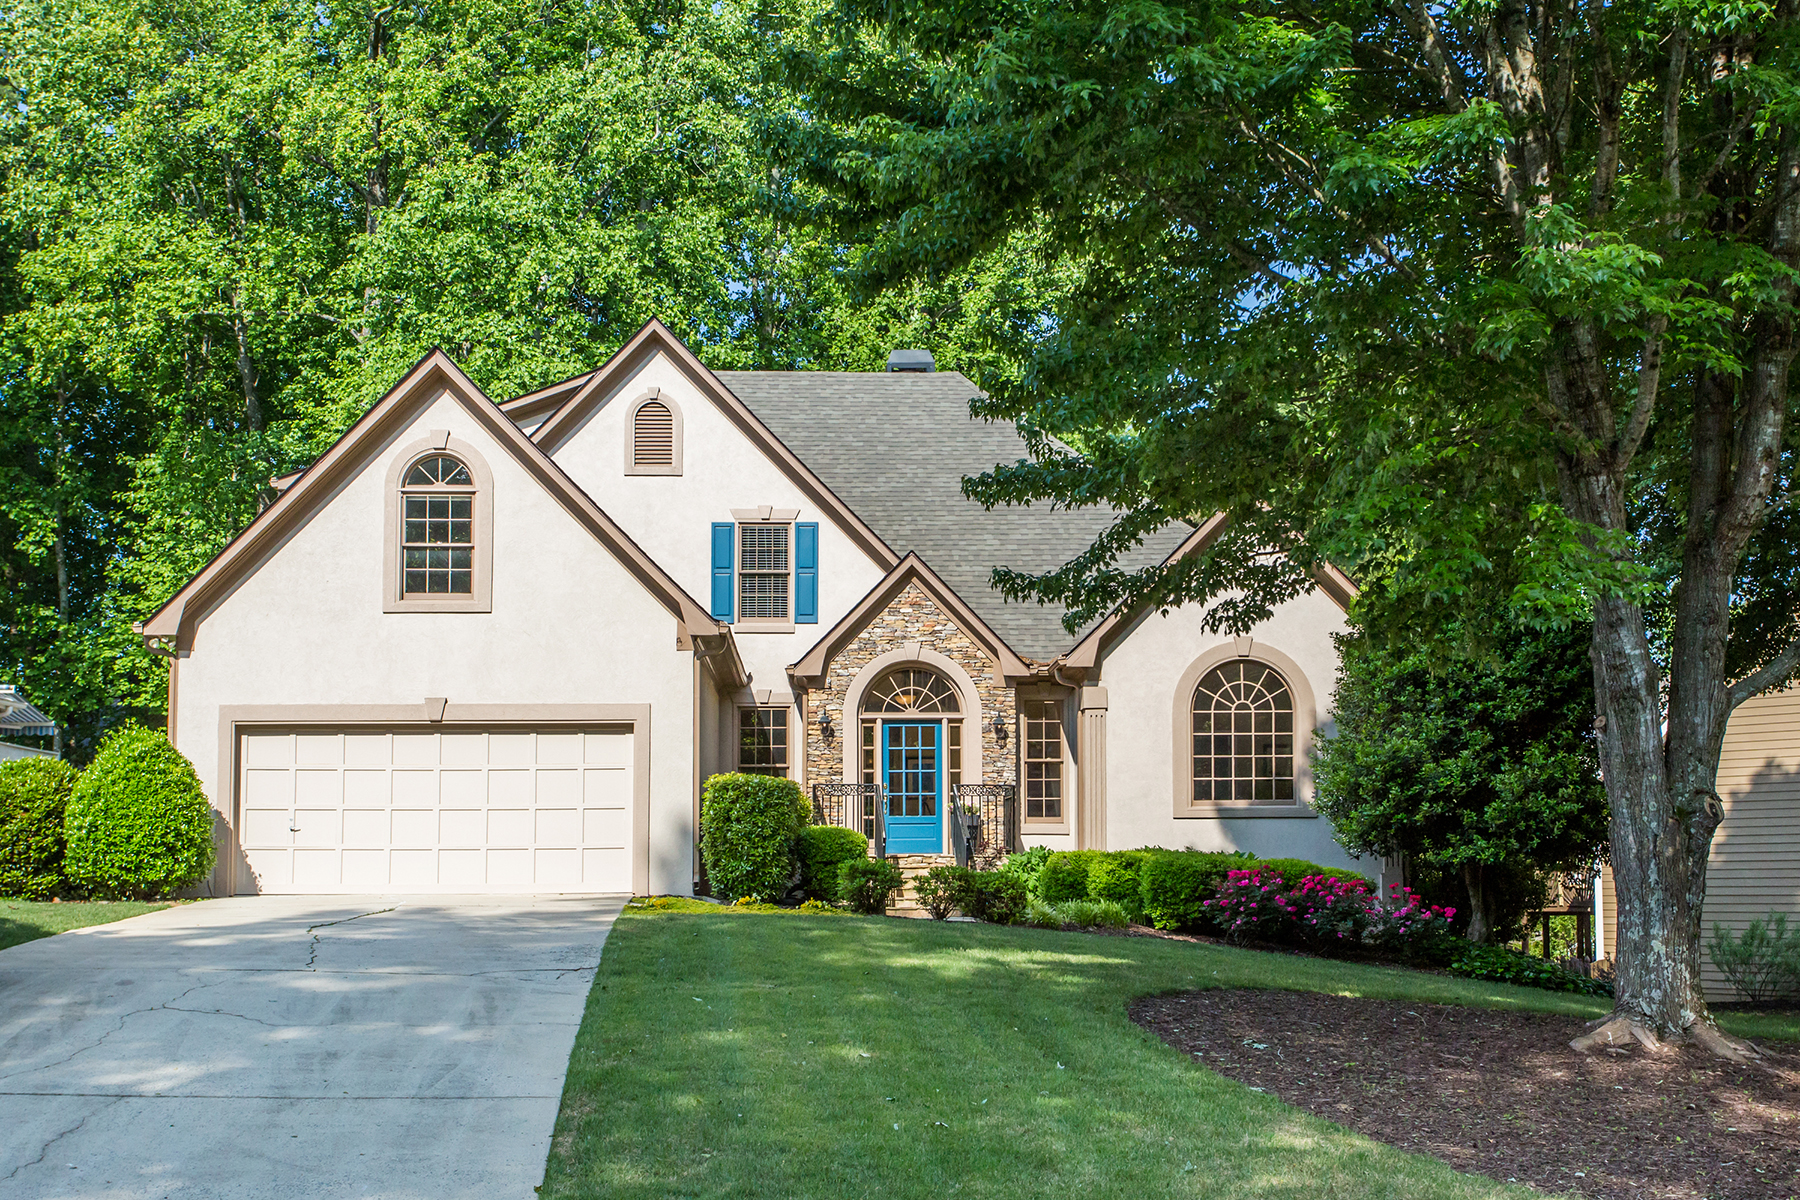 Single Family Home for Sale at Rare Price Point In Sought After Community 6435 Brookline Ct Cumming, Georgia 30040 United States